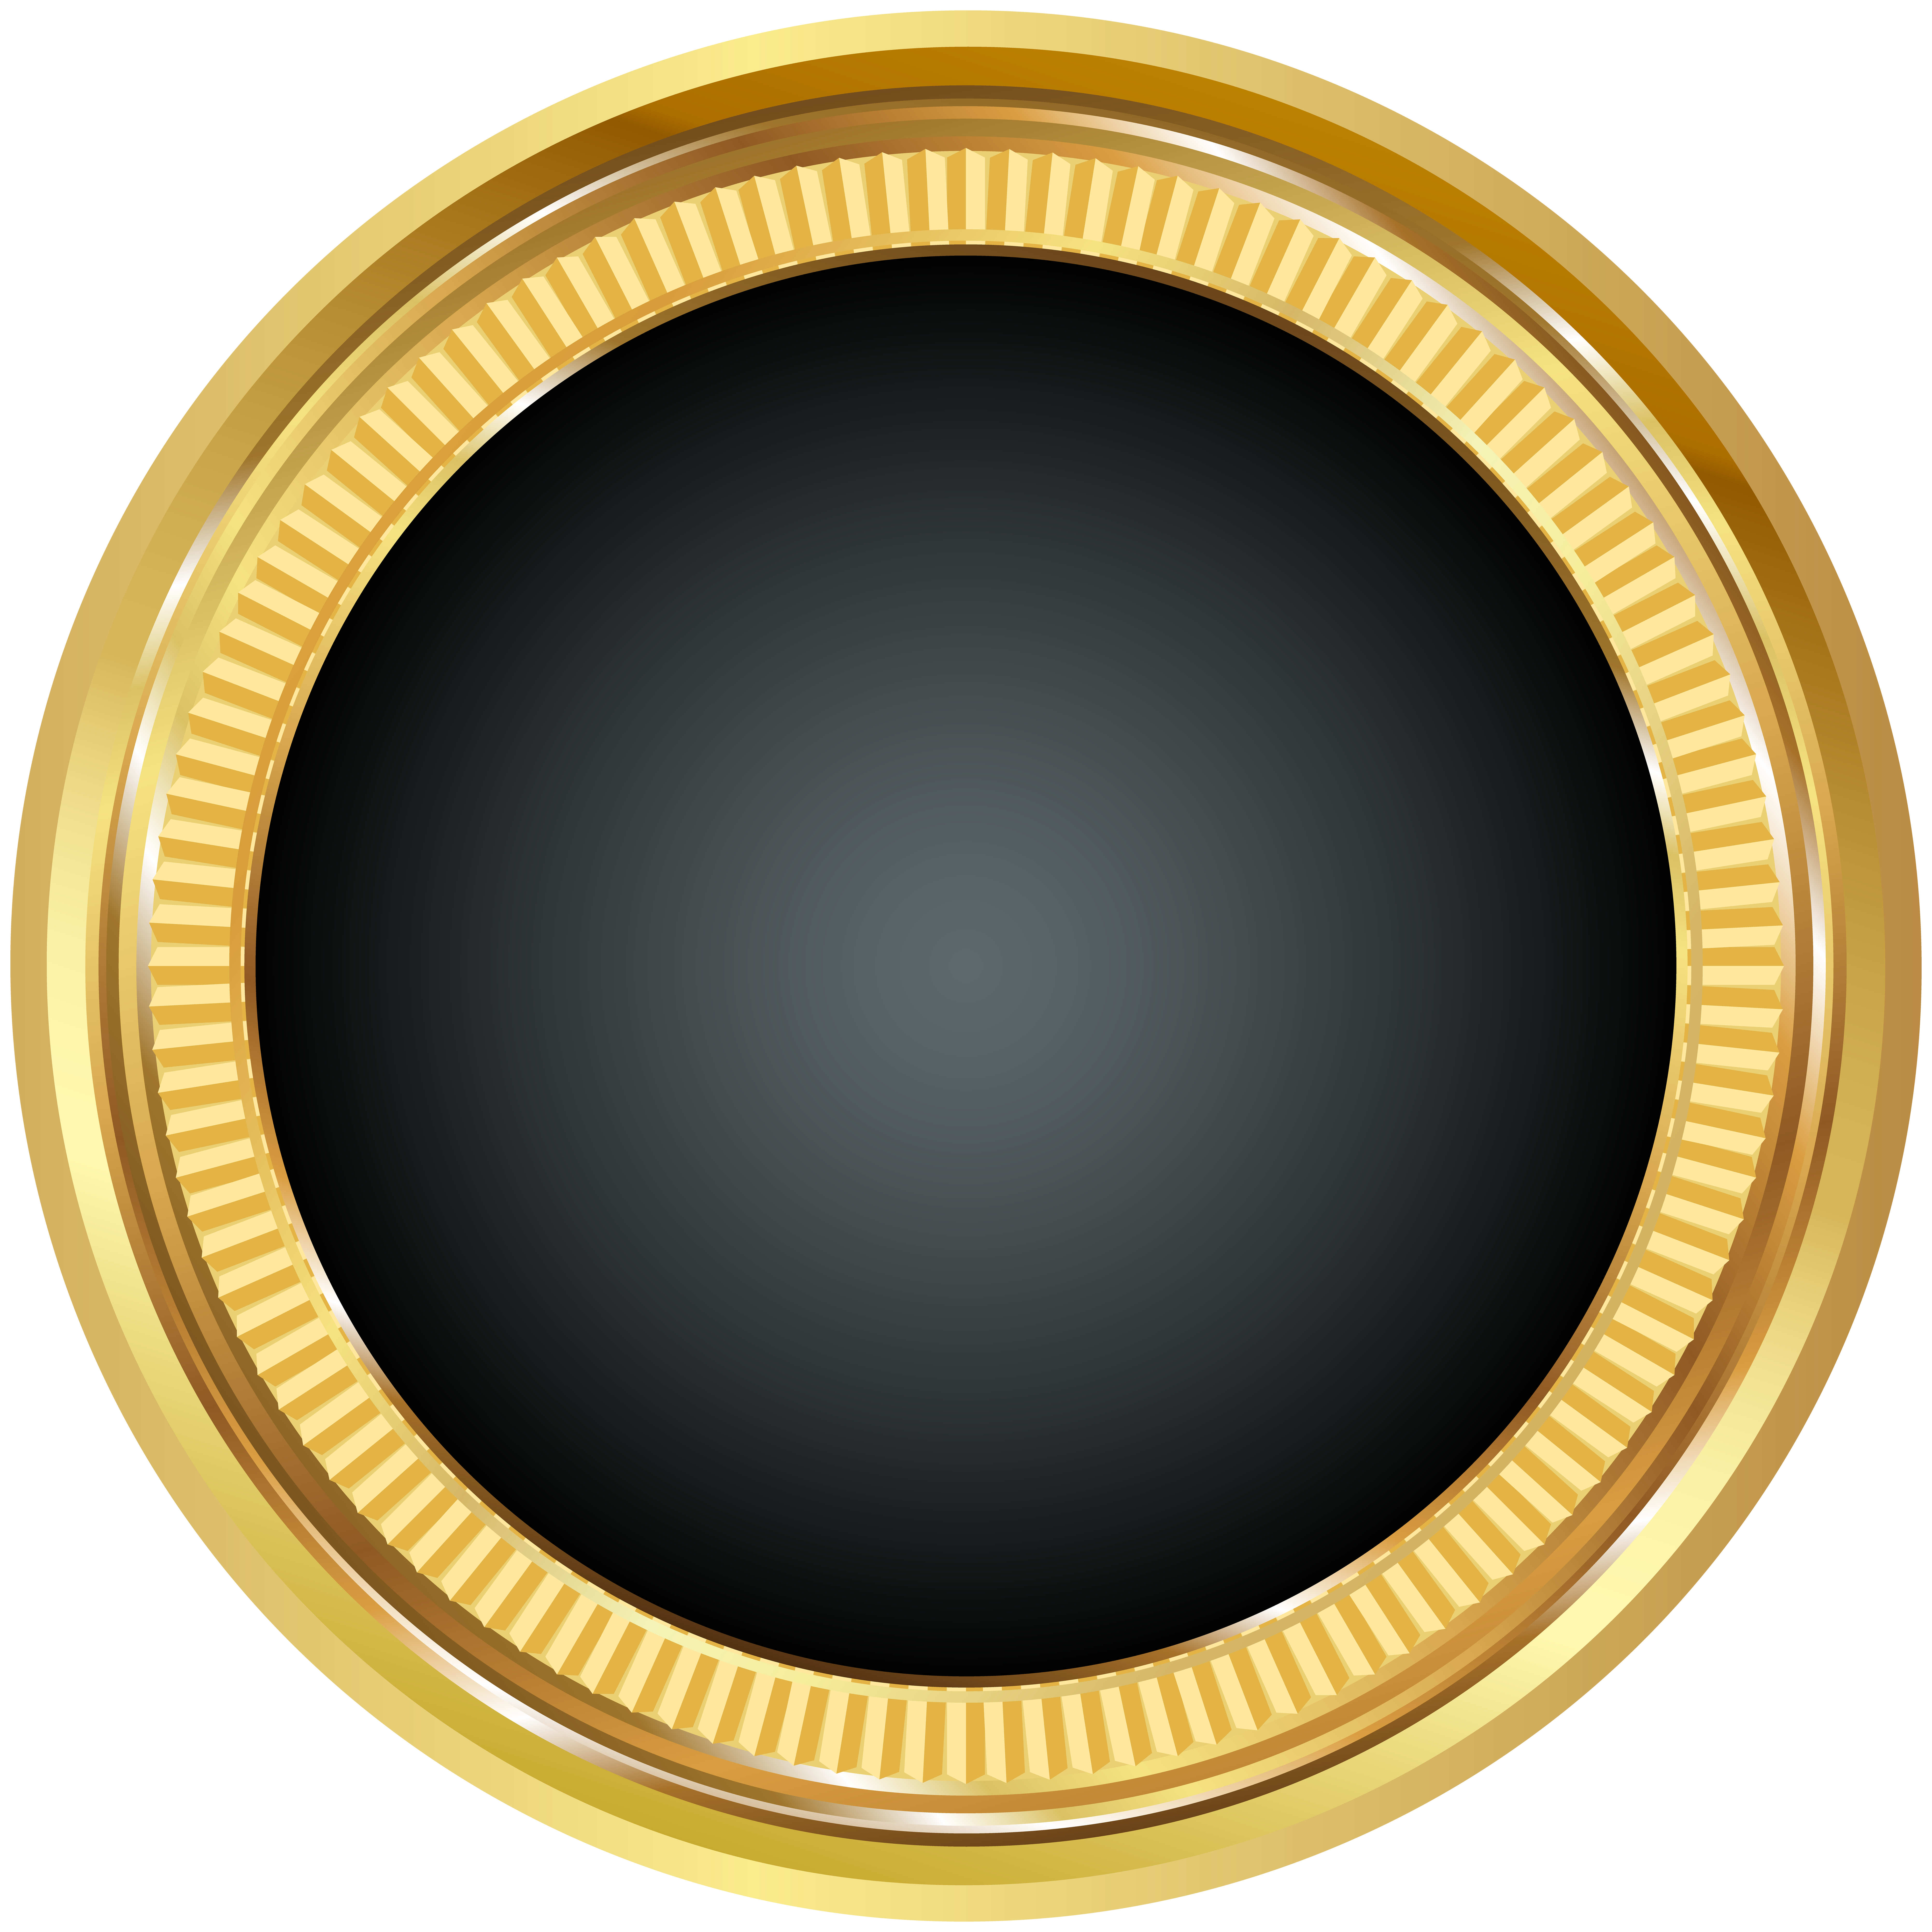 Black and gold backgrounds png. Seal badge clip art